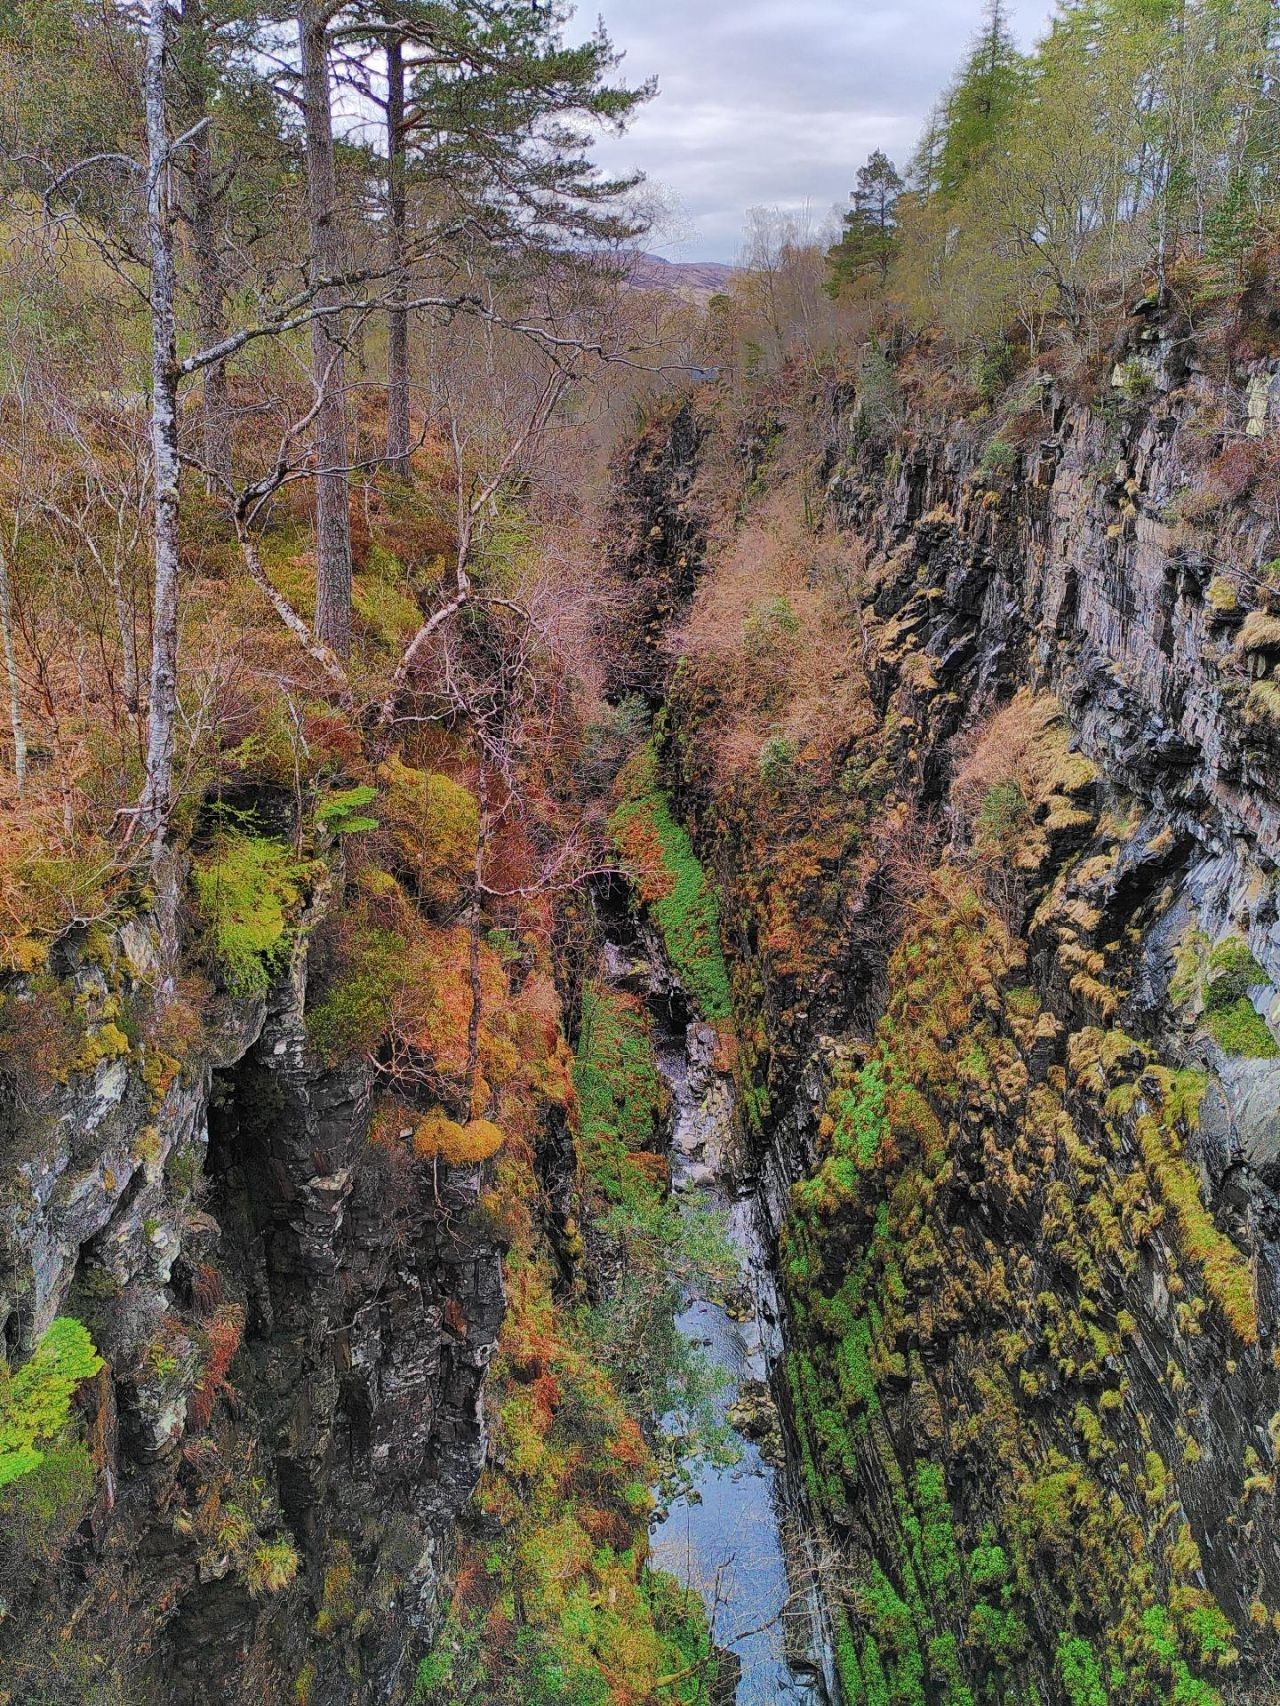 View into the gorge, very tall and sheer rock slopes speckled with mosses and greenery lead to a thin ribbon of water.